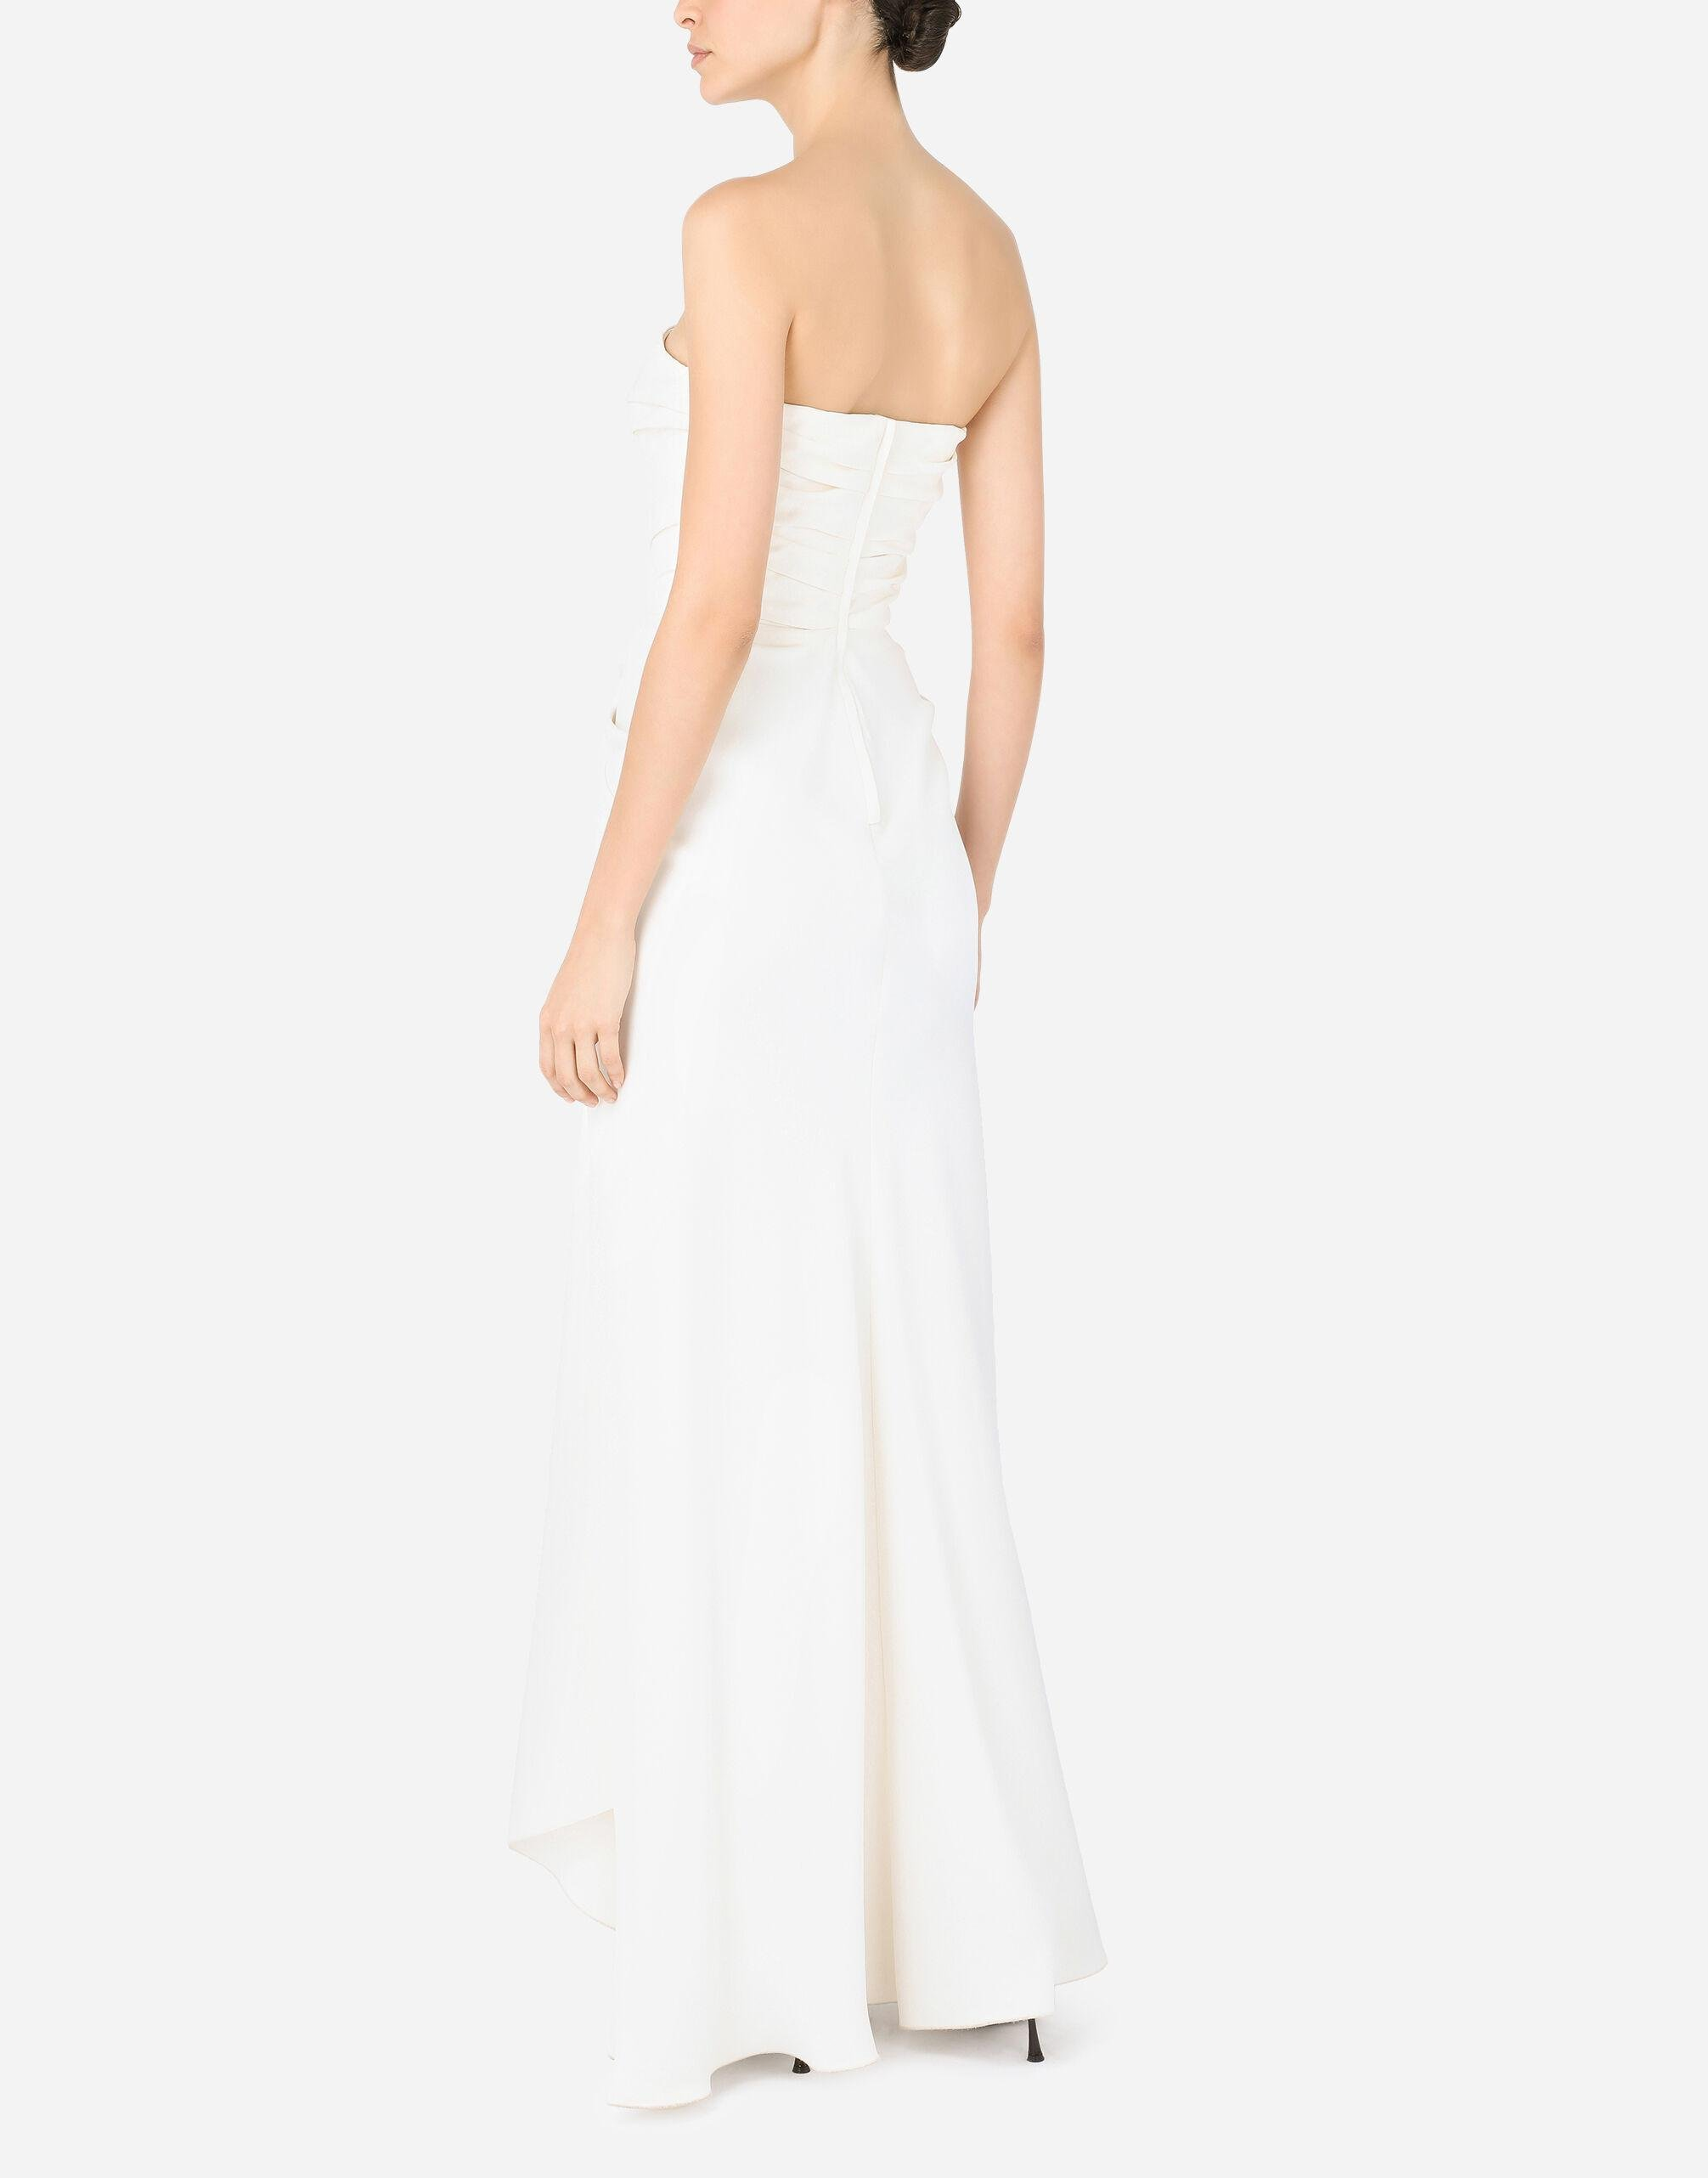 Long sable dress with side slit 3